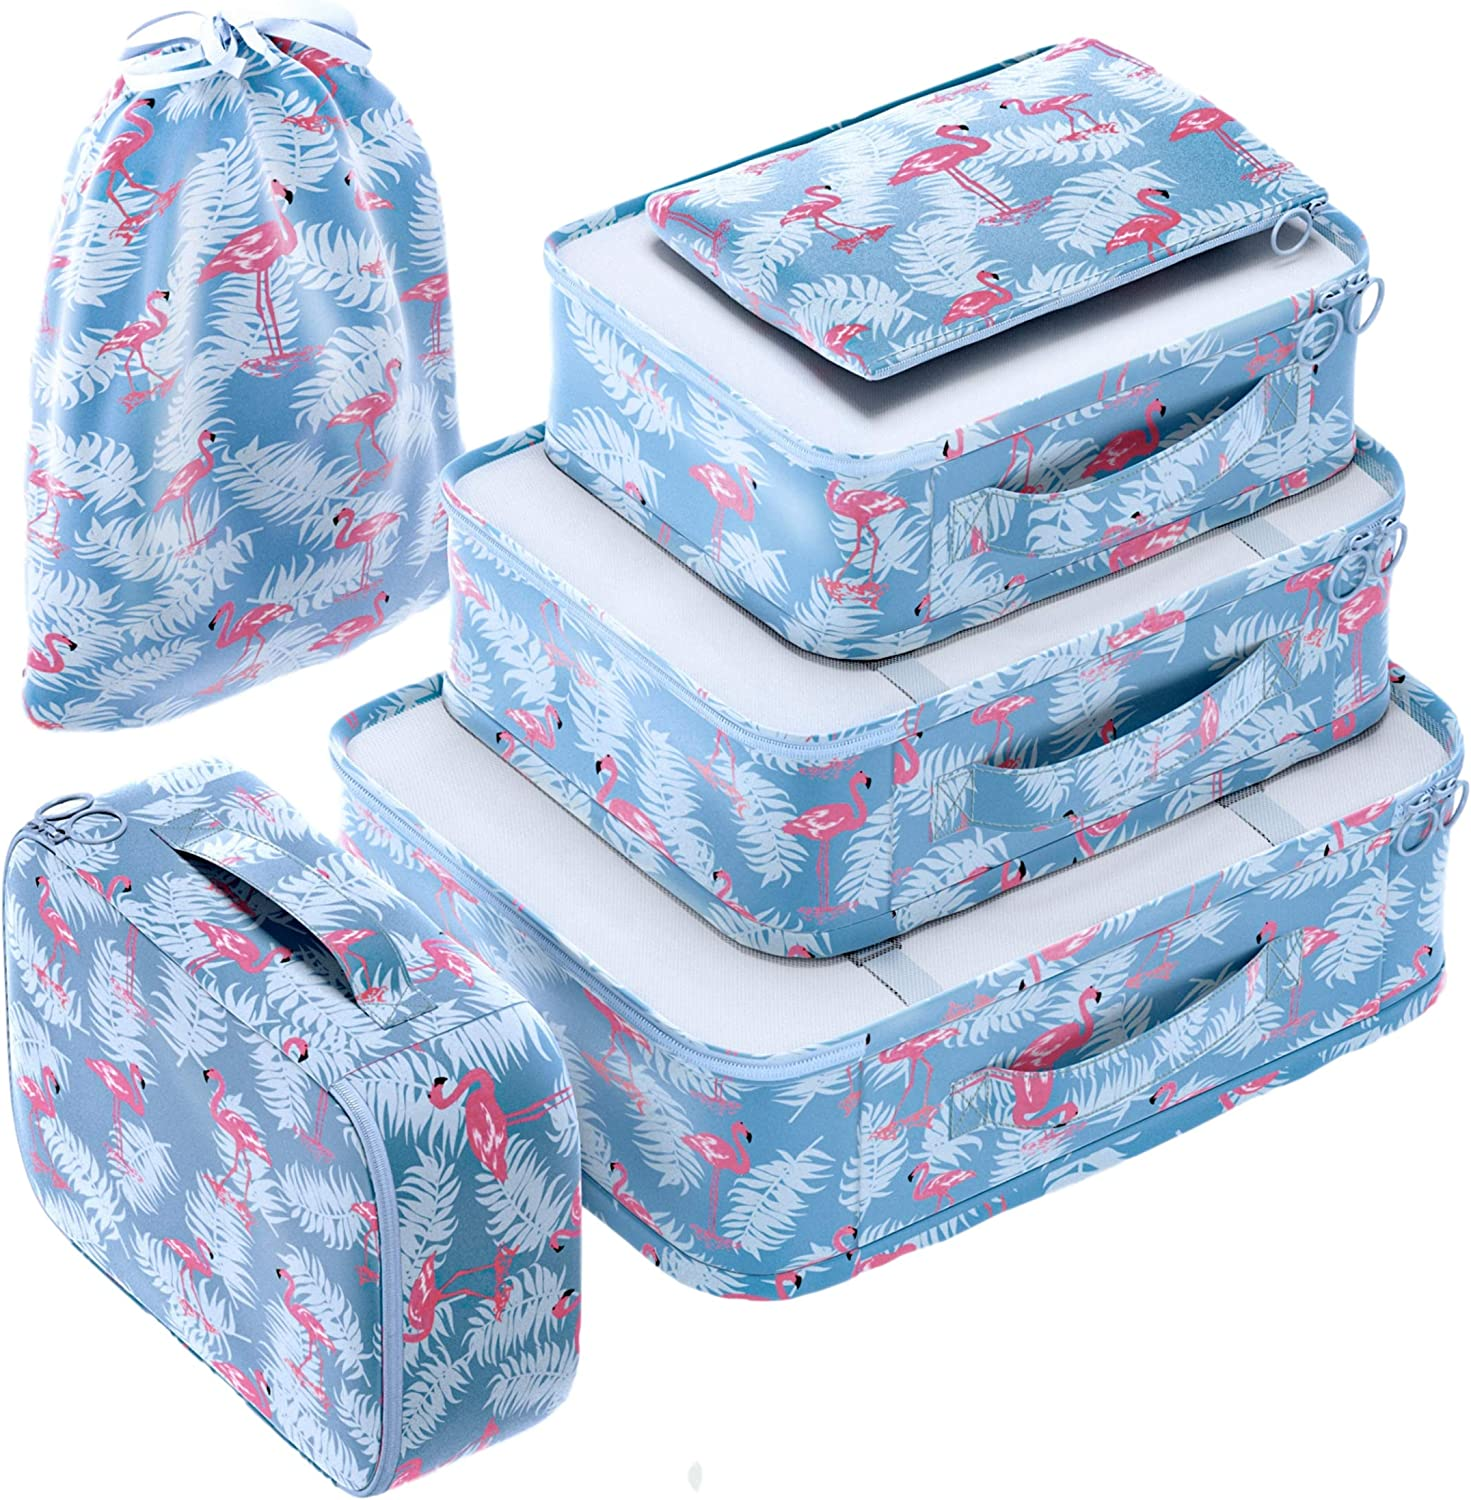 EVEK Packing Cubes Set Travel Luggage Organizer Suitcase Compact Lightweight Large Capacity